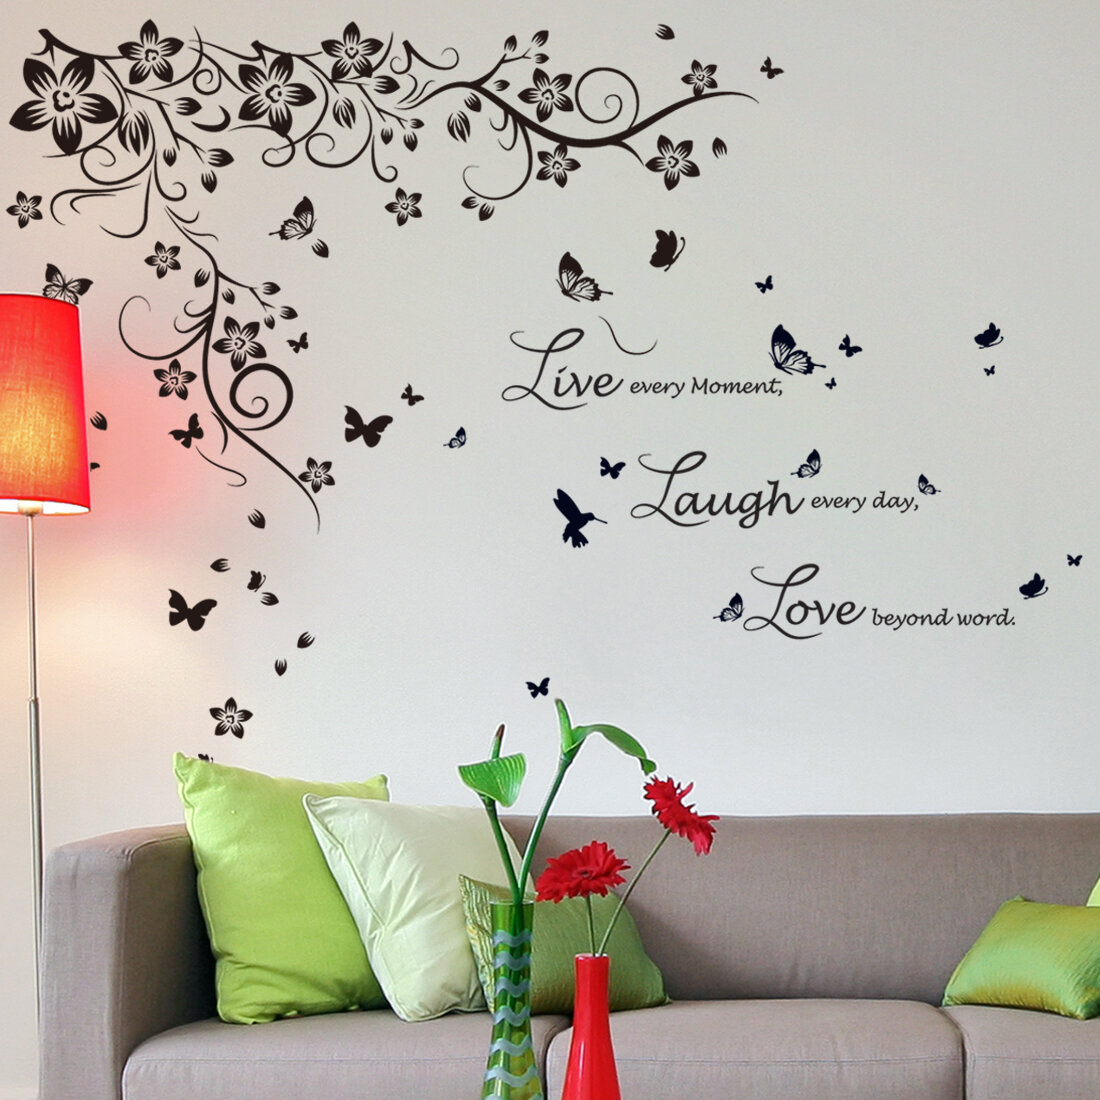 Walplus New Huge Butterfly Vine And Live Laugh Love Wall Decal